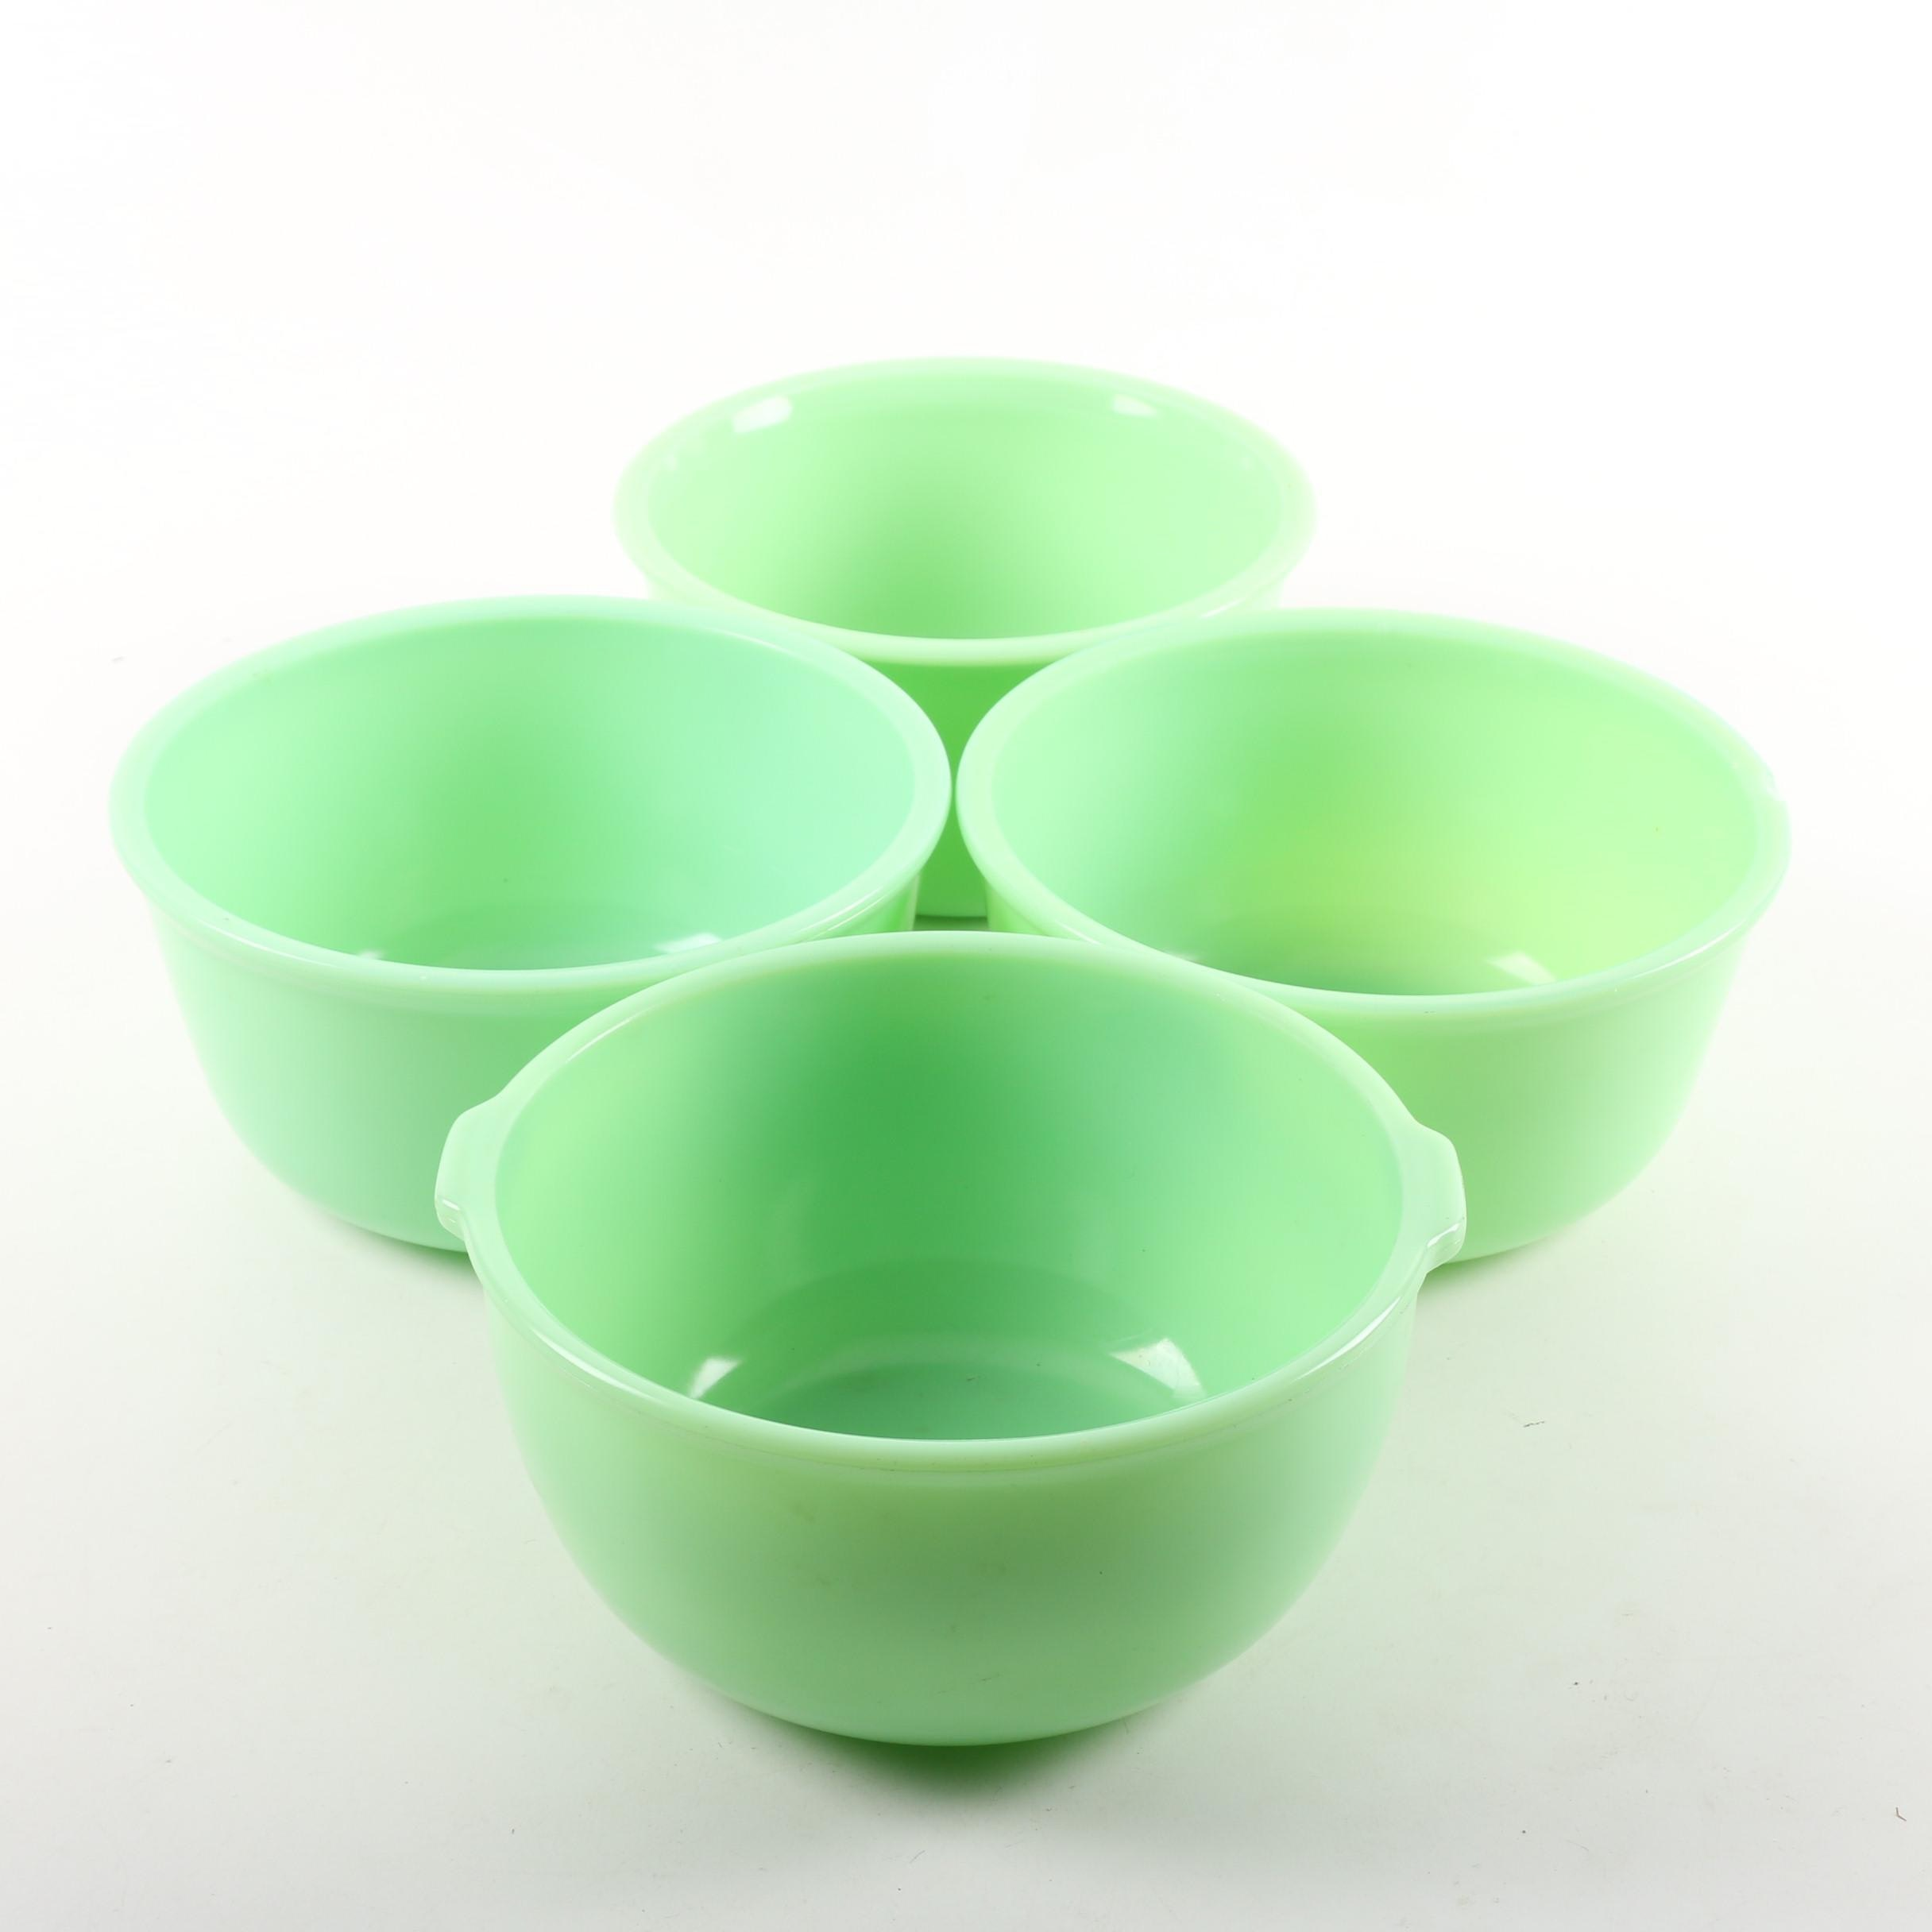 Vintage Green Milk Glass Mixing Bowls